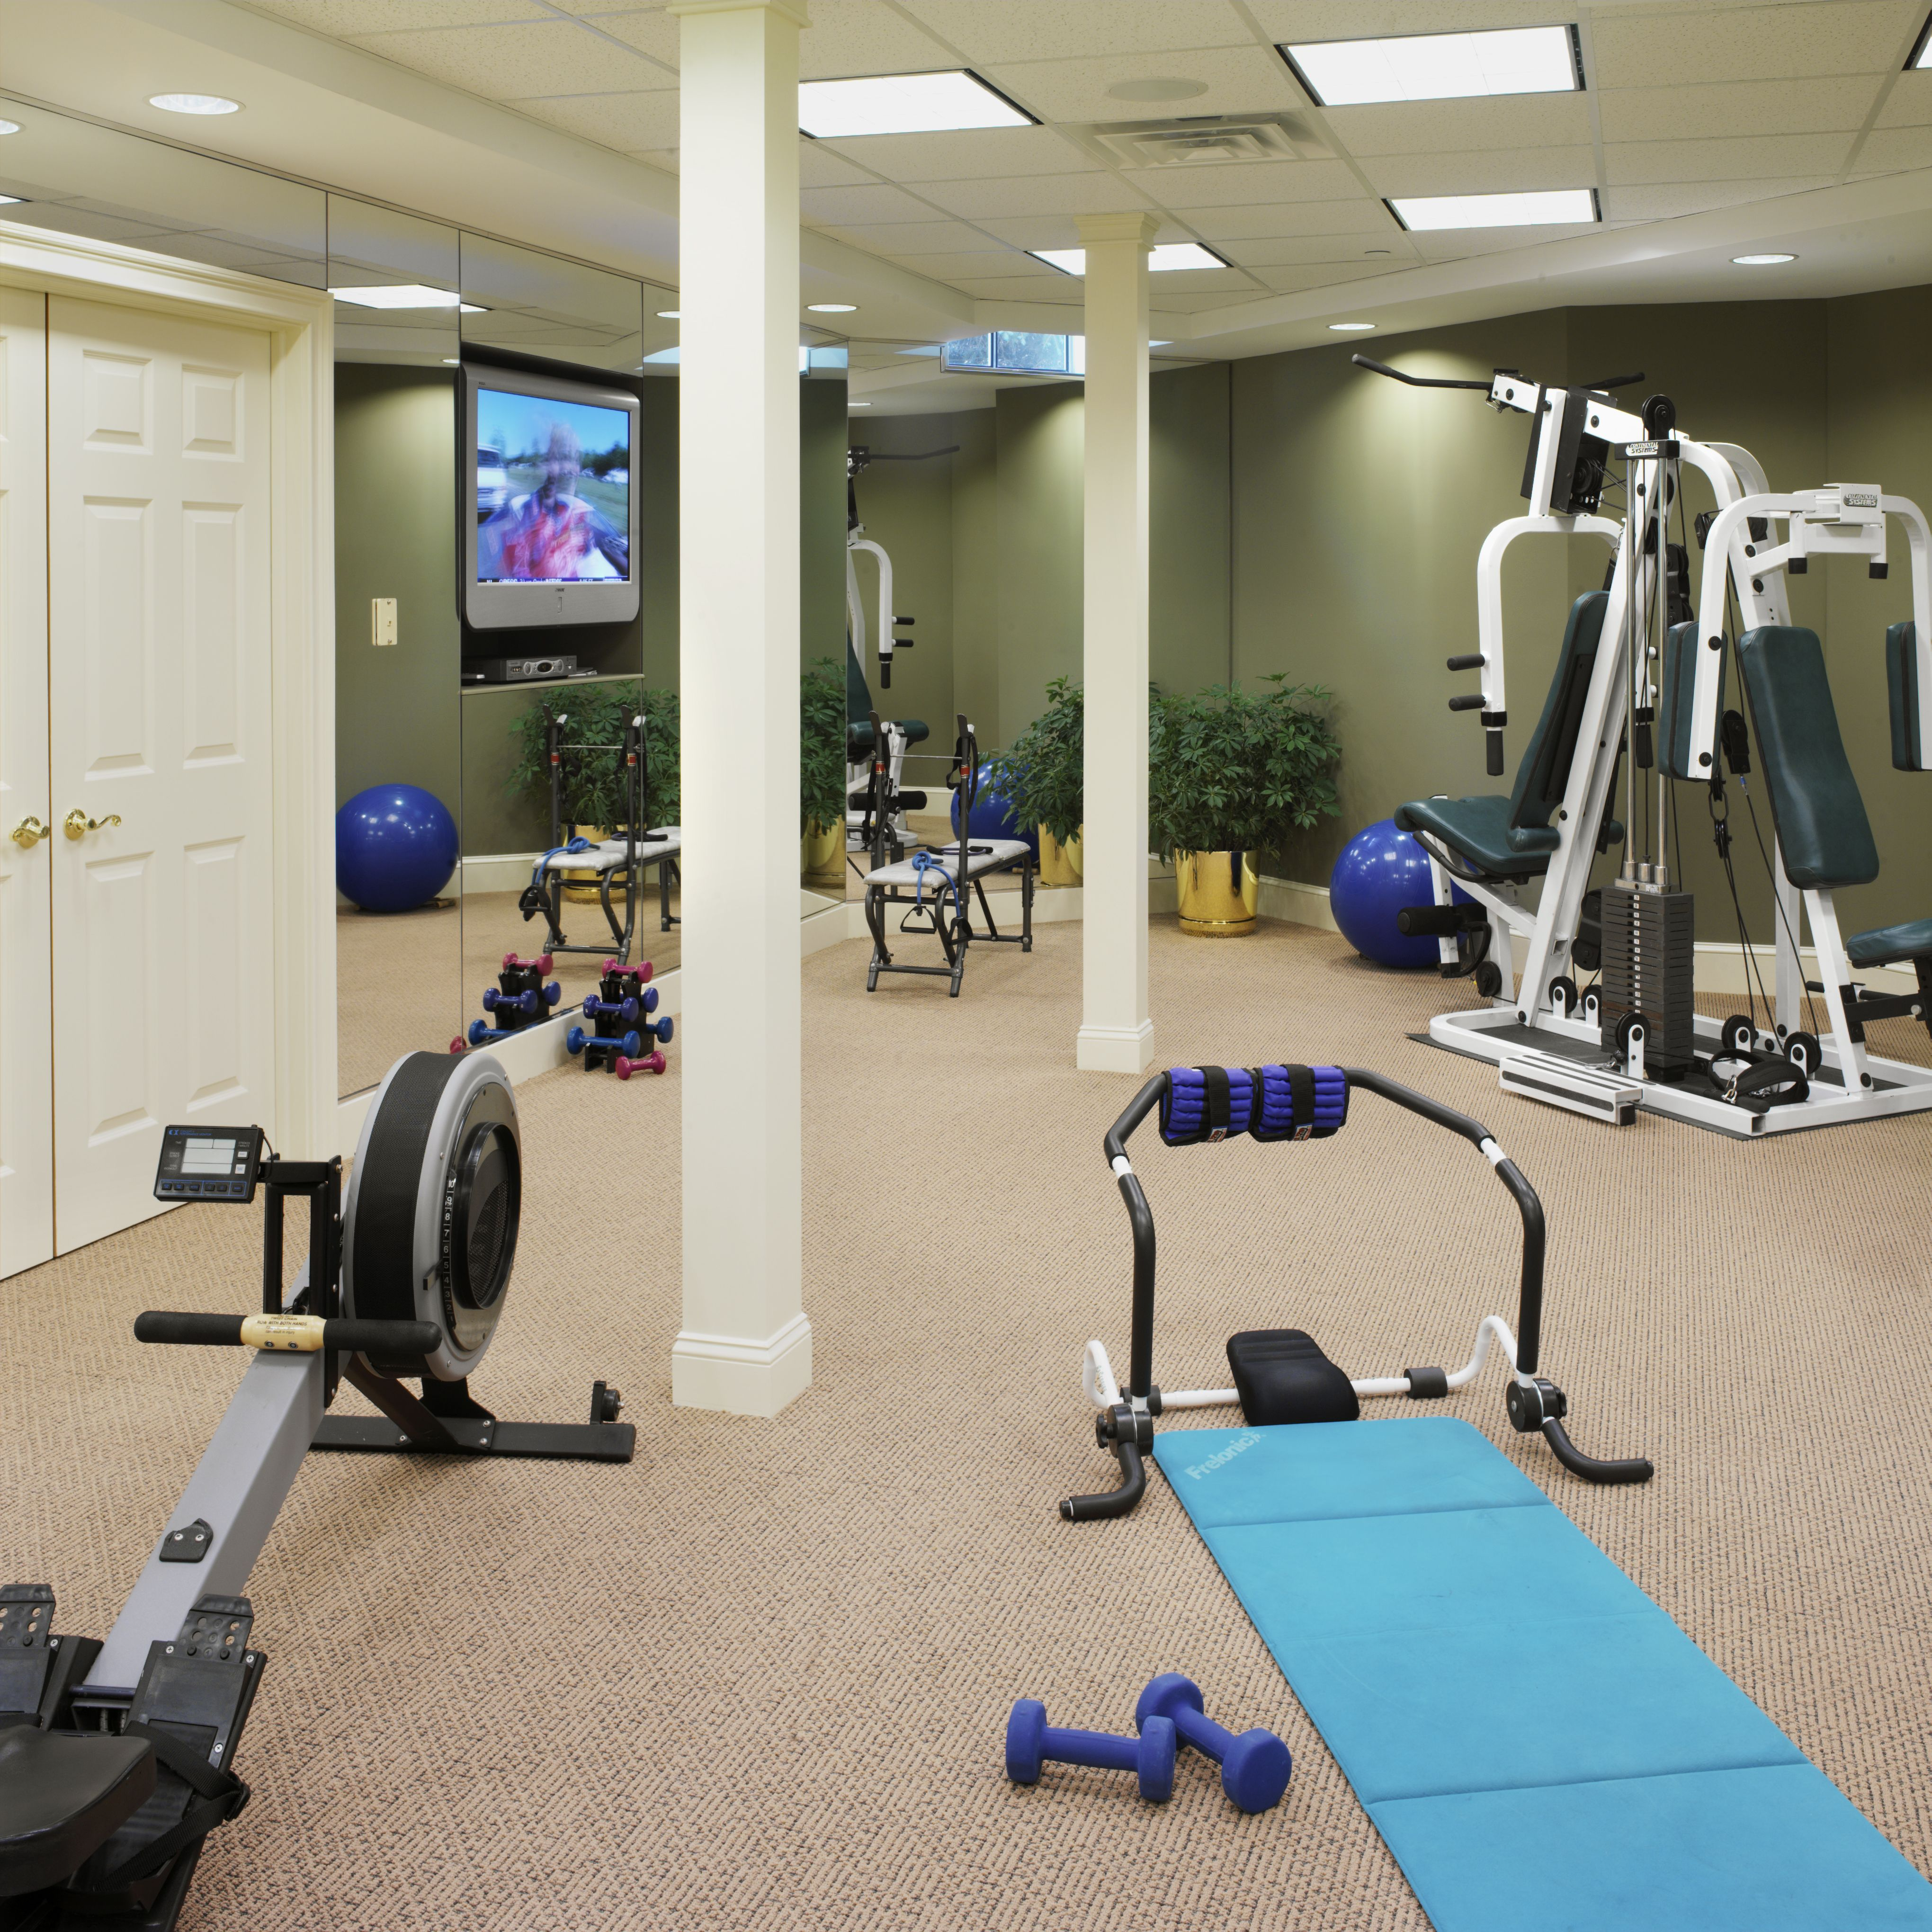 home gym- like the tv set in the mirrored walls | Dream Home - Gym ...